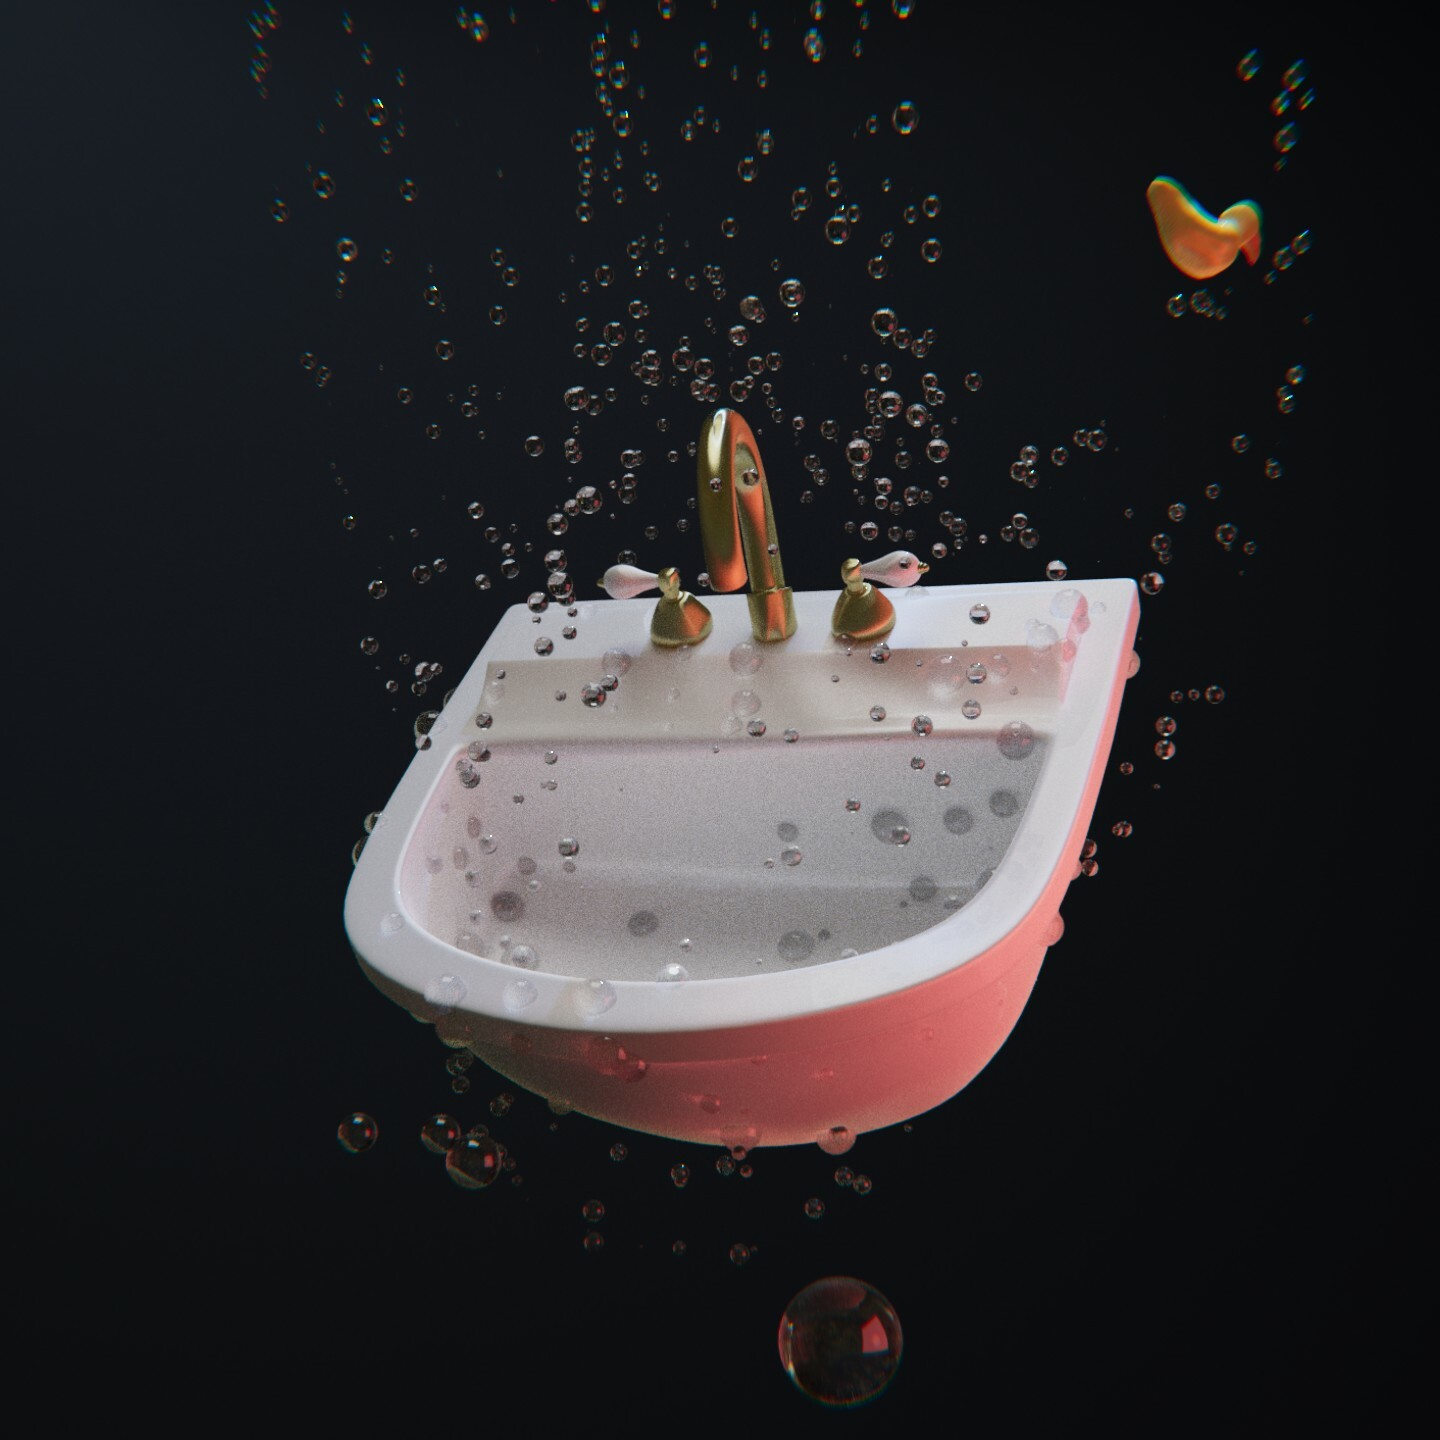 SculptJanuary2020 - Day23 - Sink